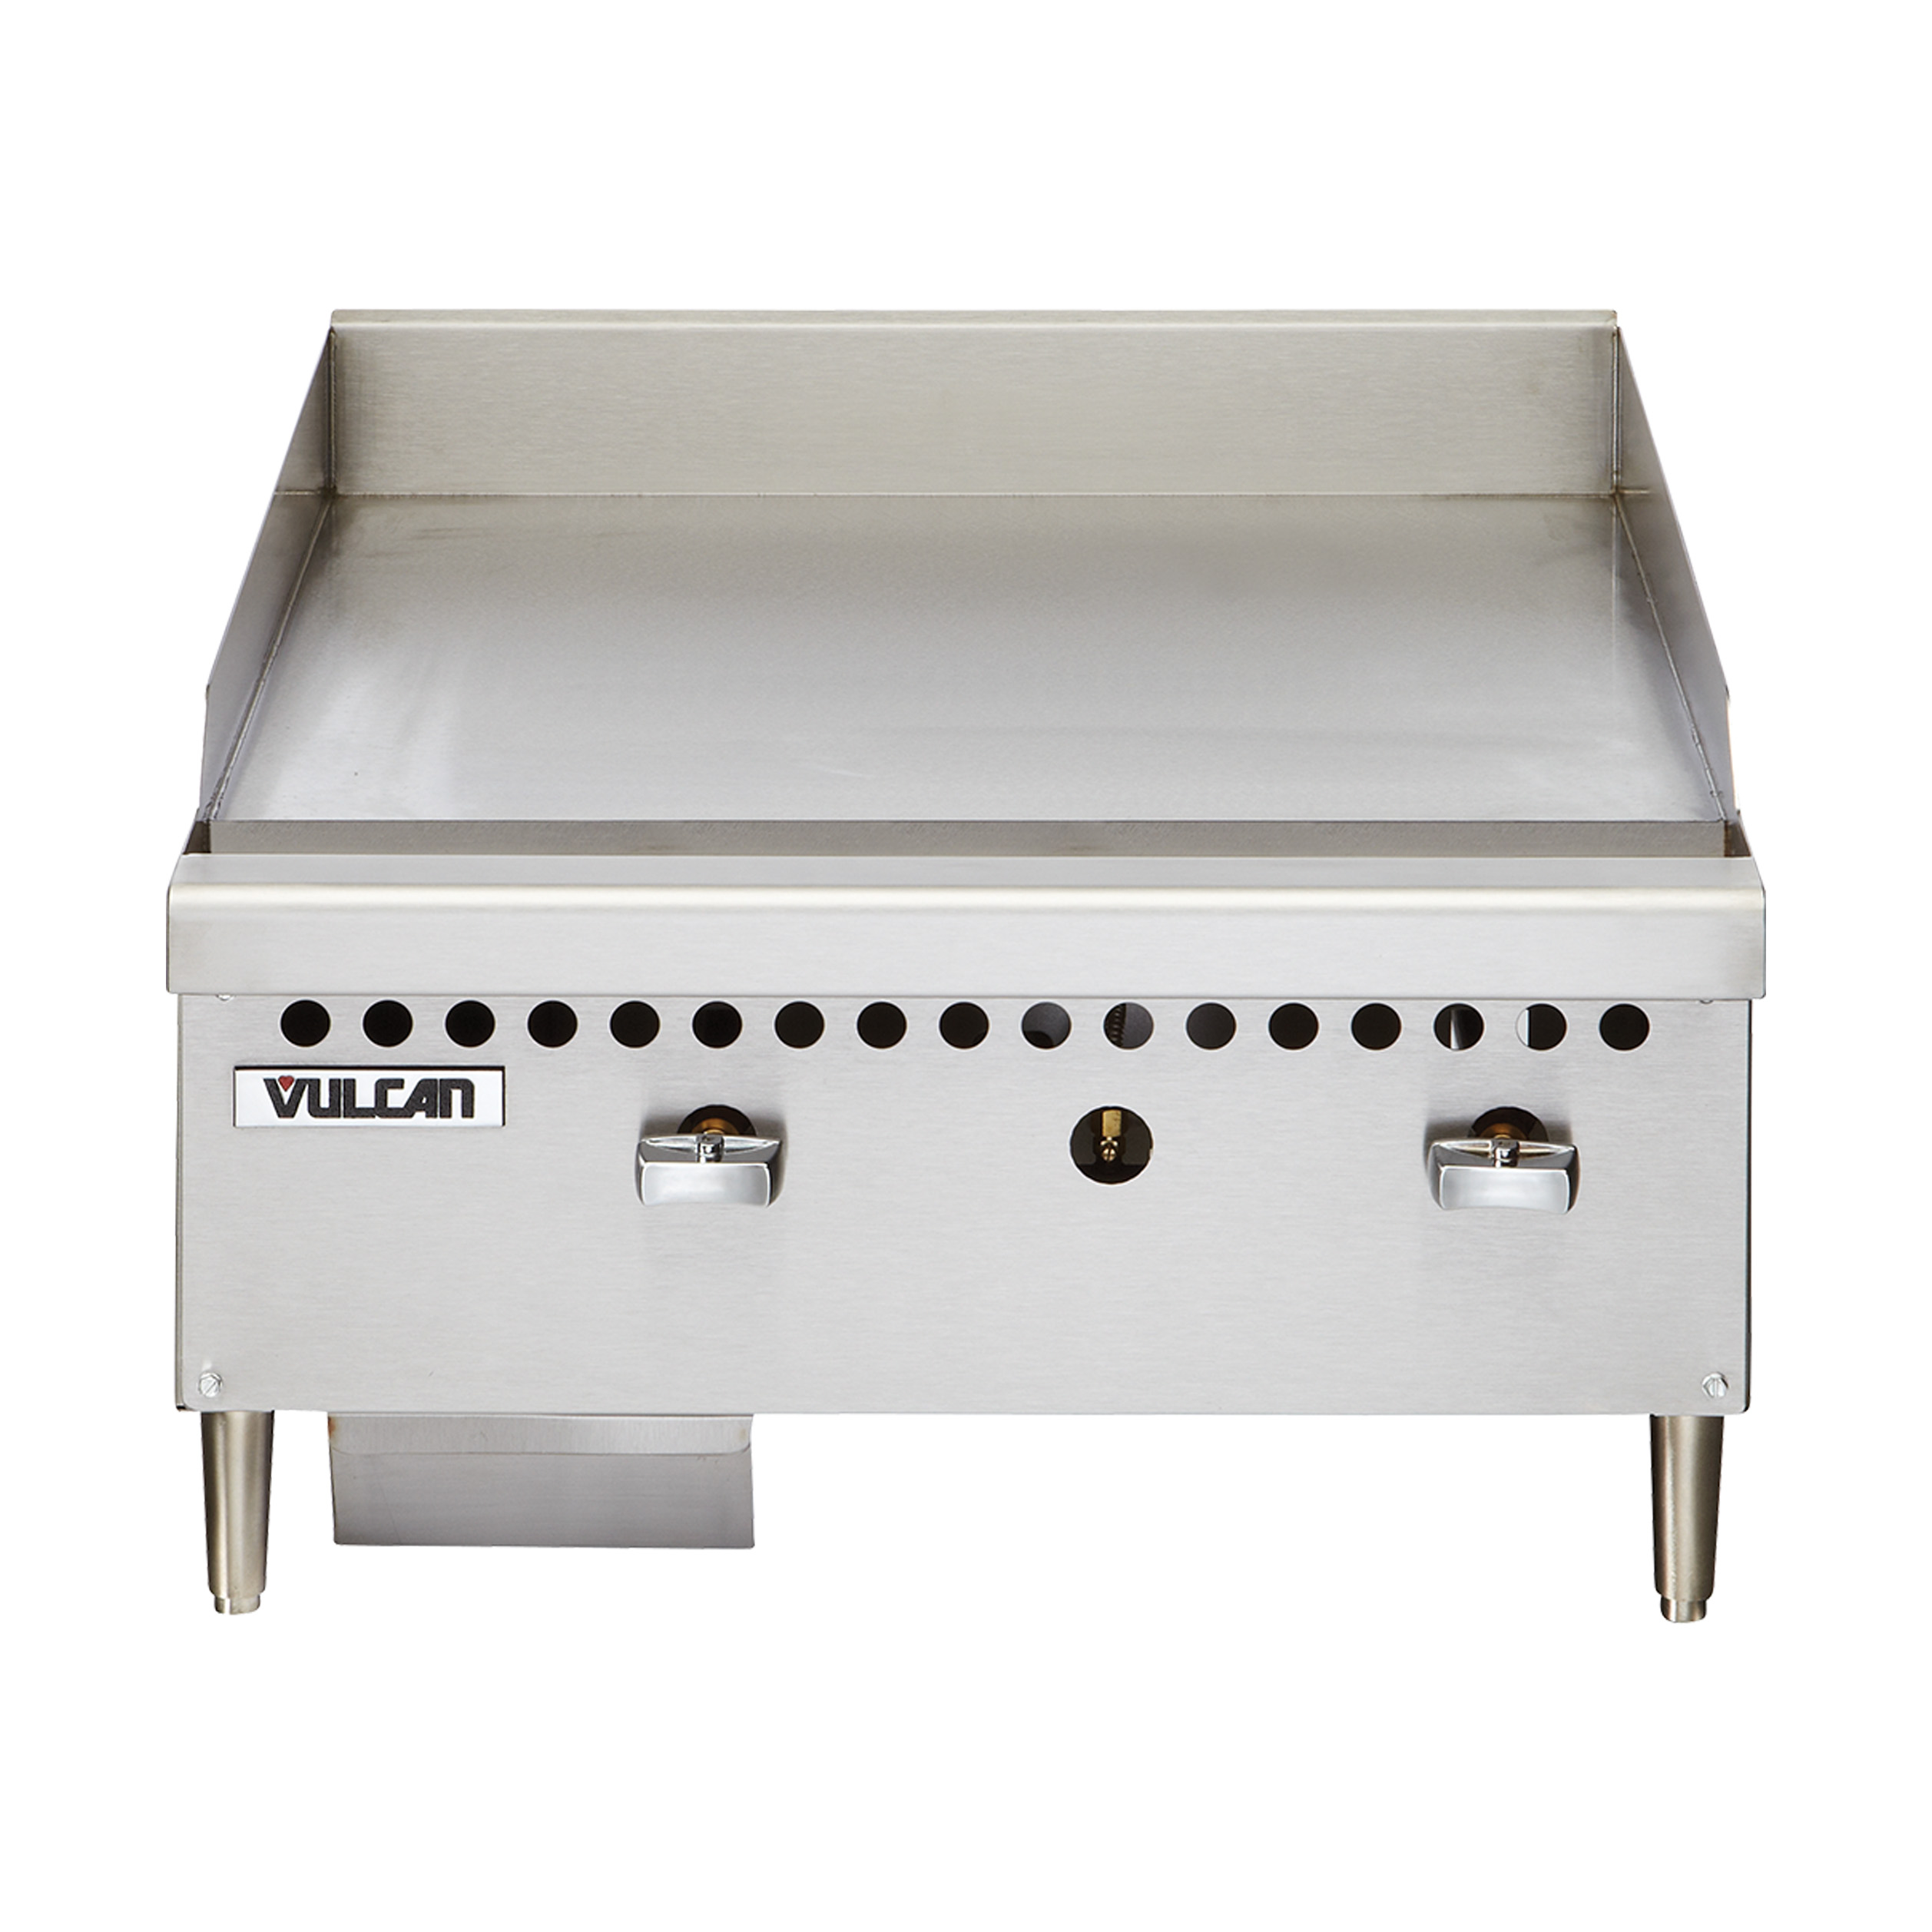 Vulcan VCRG36-M griddle, gas, countertop